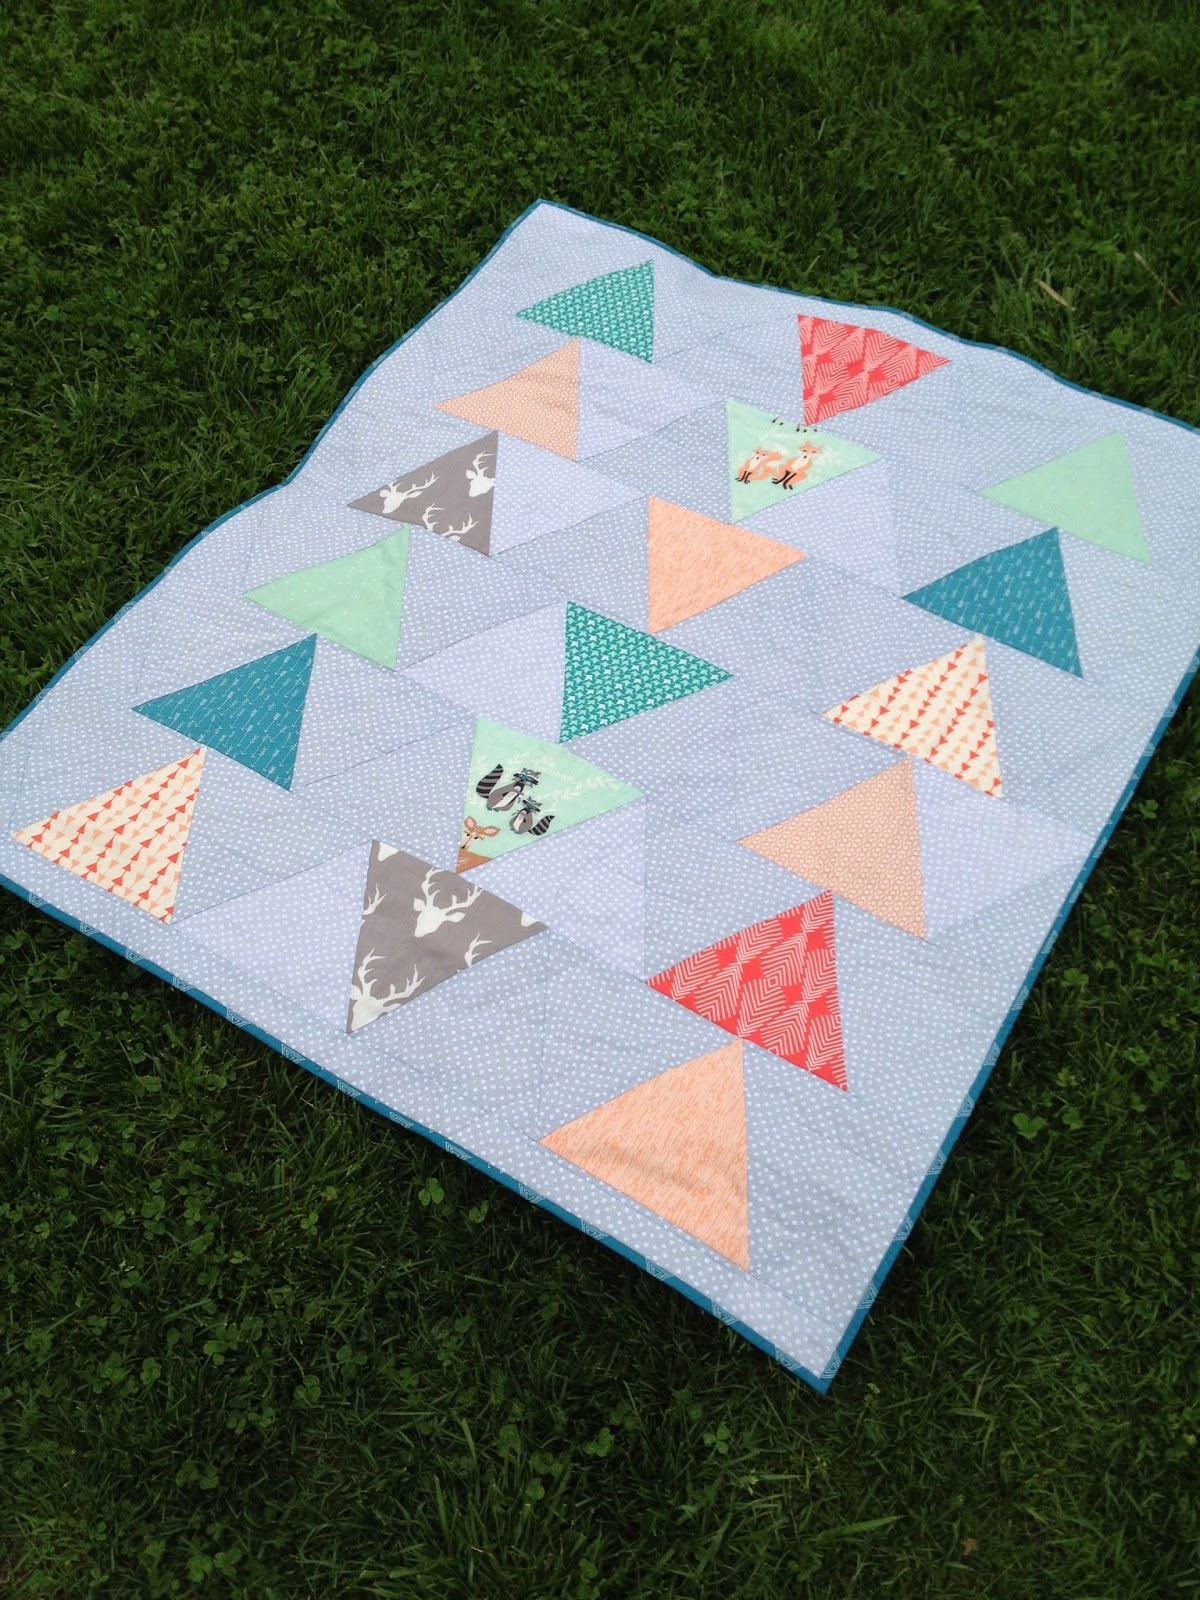 http://ablueskykindoflife.blogspot.com/2015/04/into-woods-baby-quilt.html